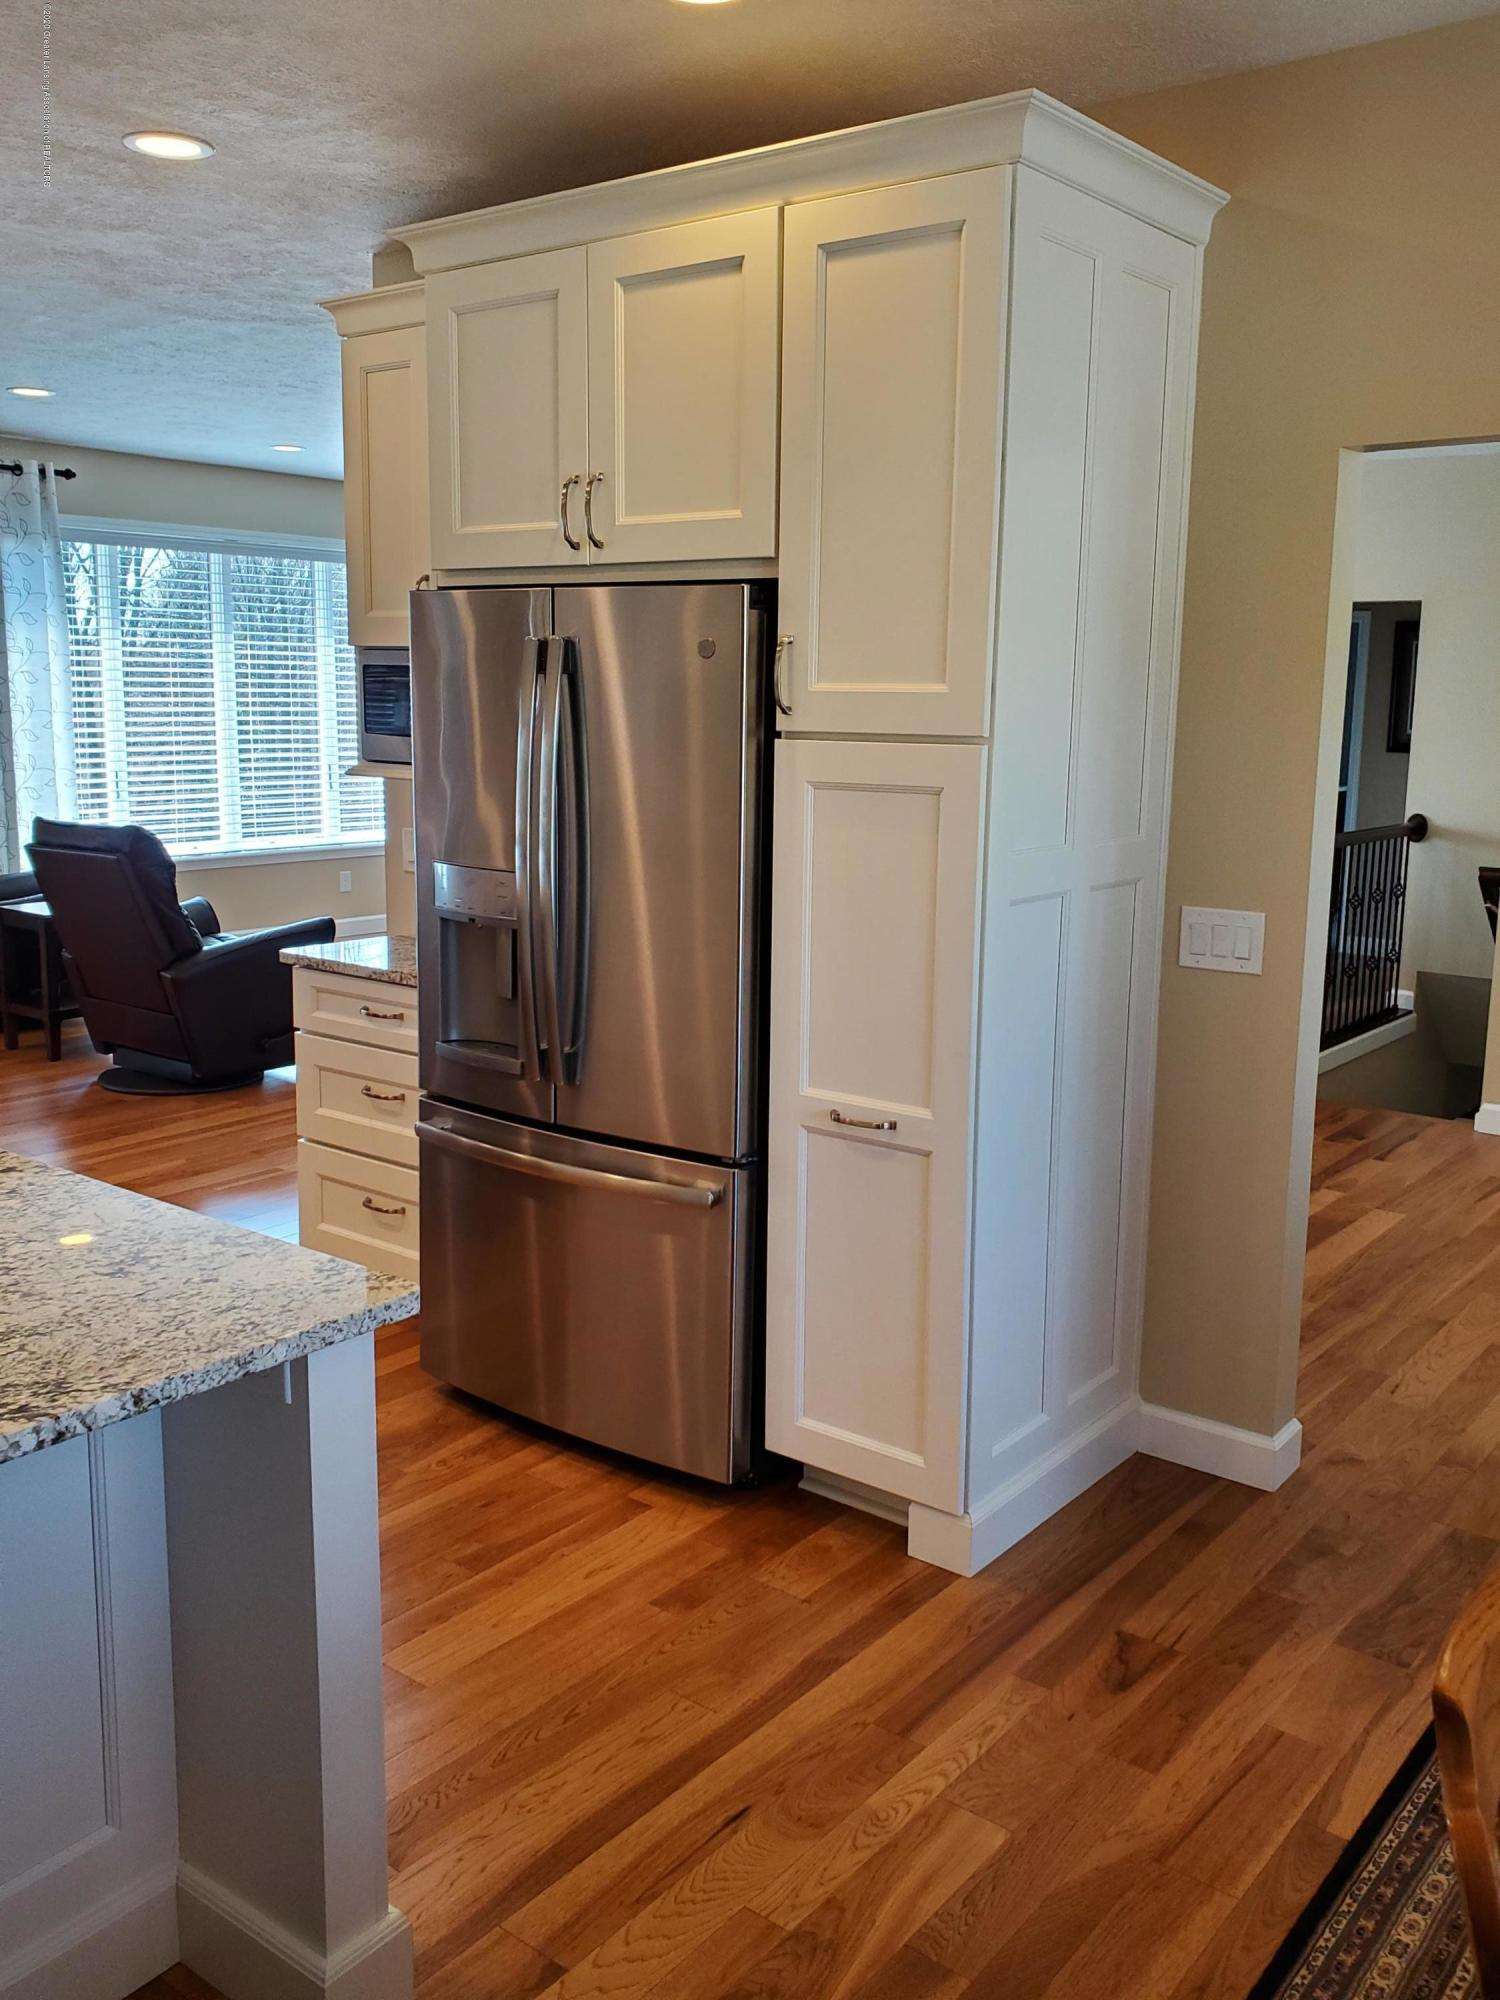 558 N Wheaton Rd - Gourmet Kitchen - 16